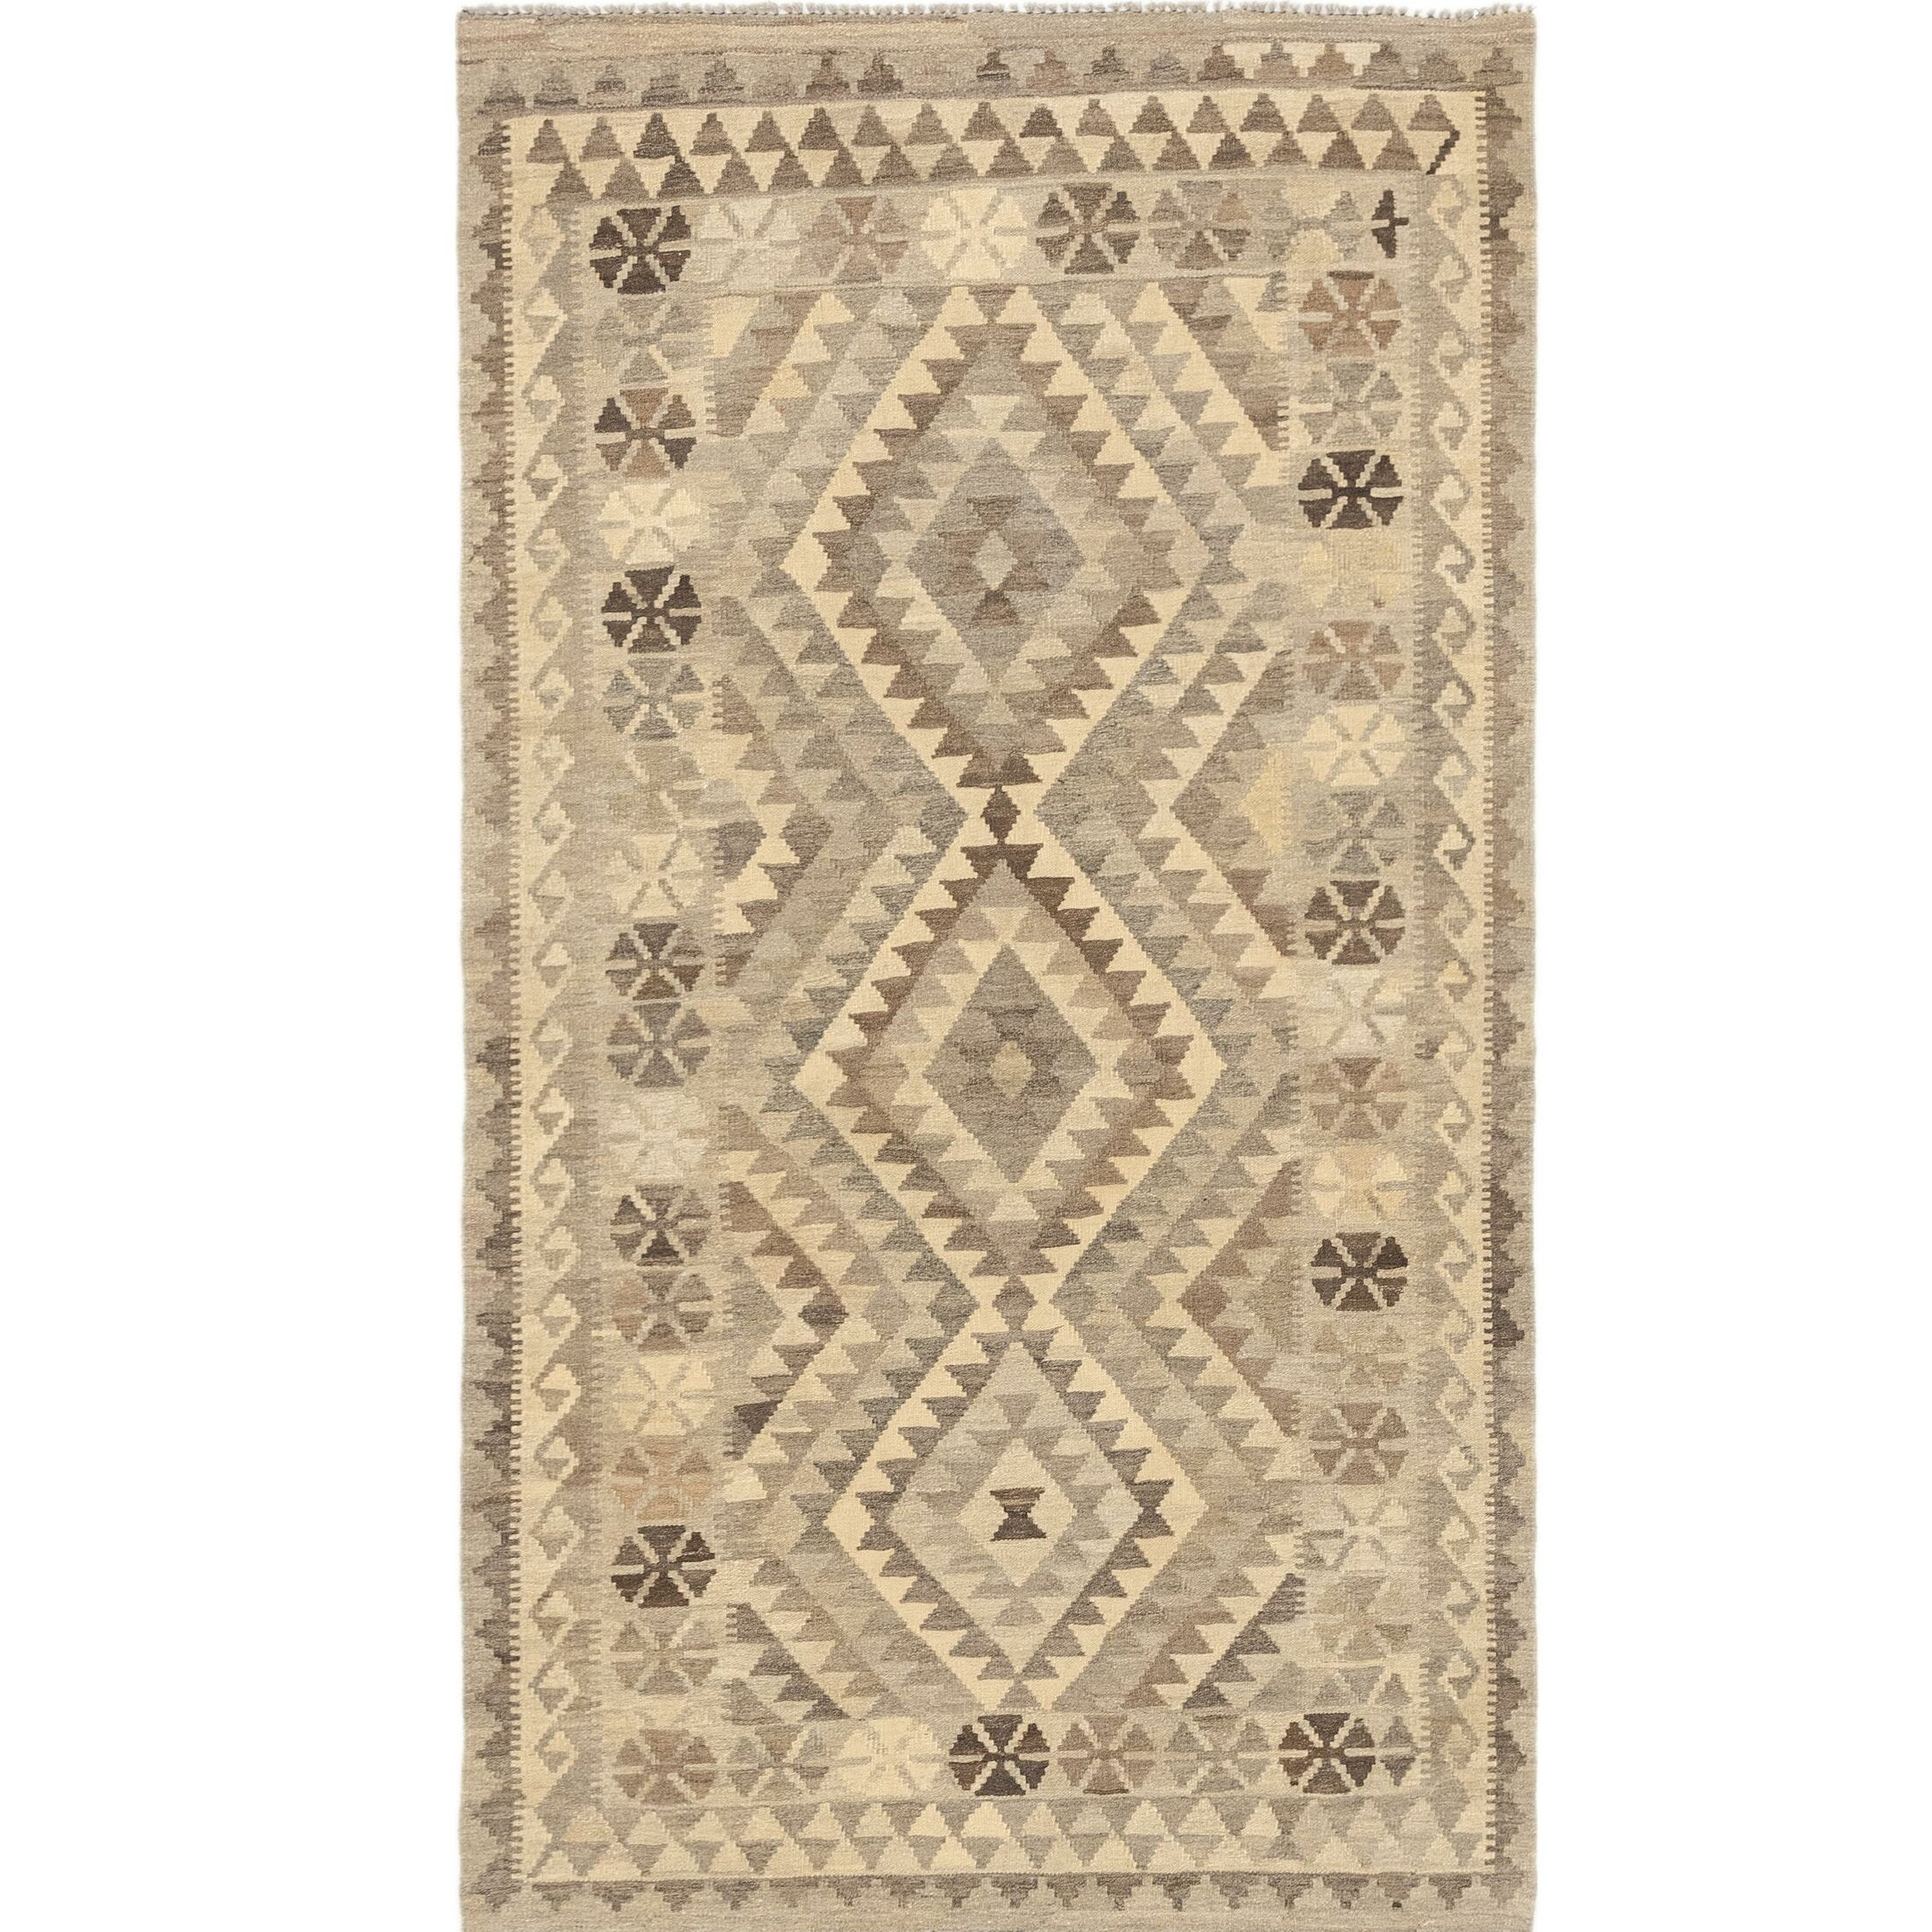 One-of-a-Kind Elland Hand-Knotted Wool Light Gray/Gray Area Rug